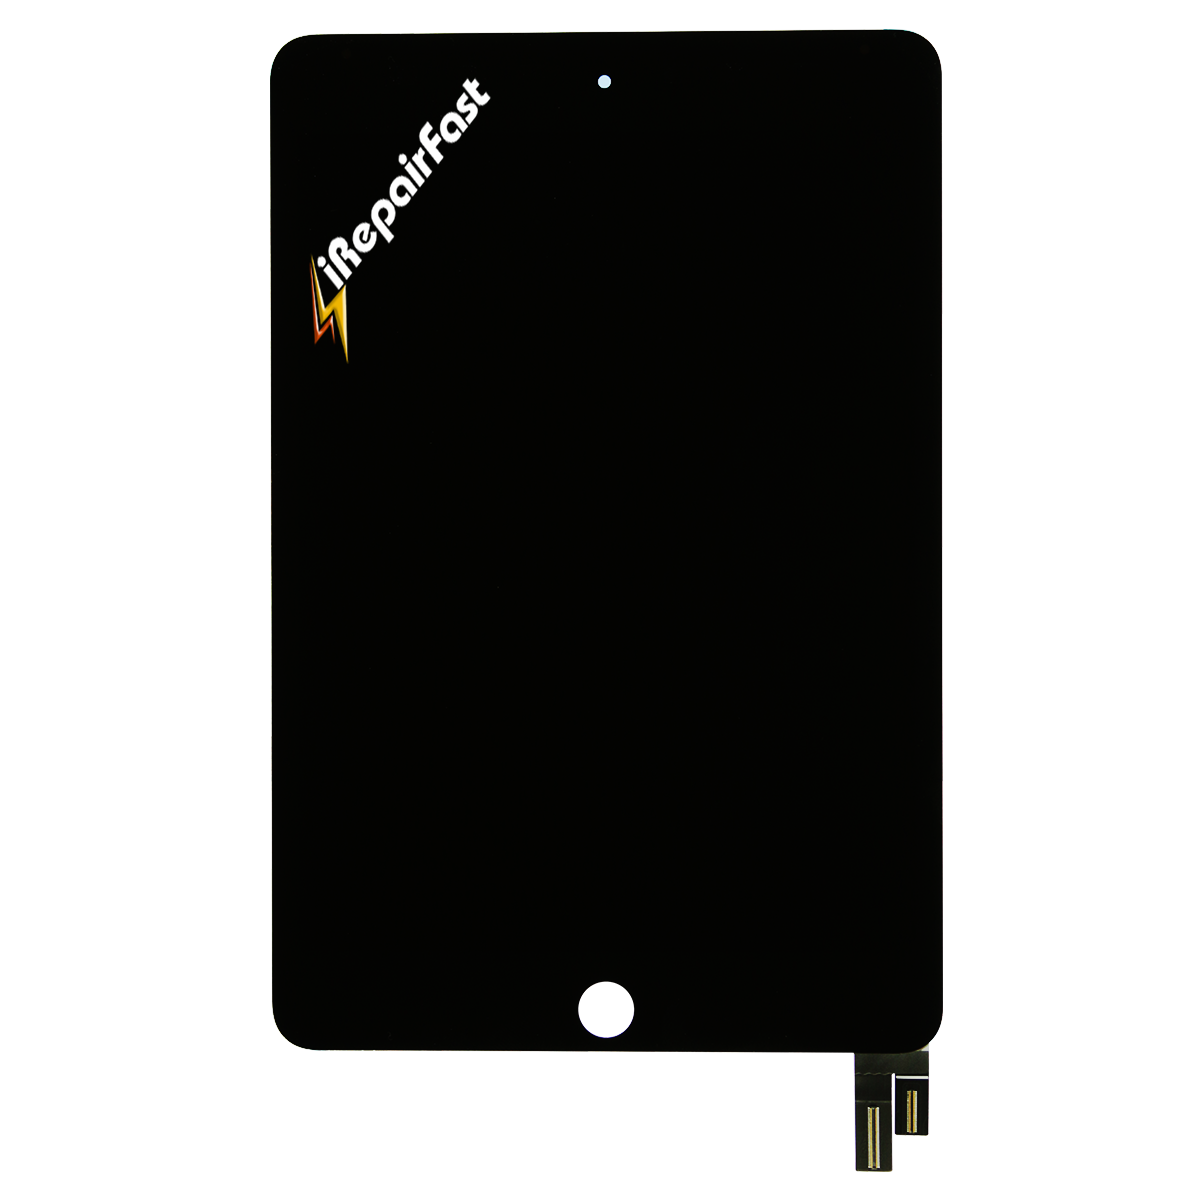 iPad_Mini_4_DIY_Kit